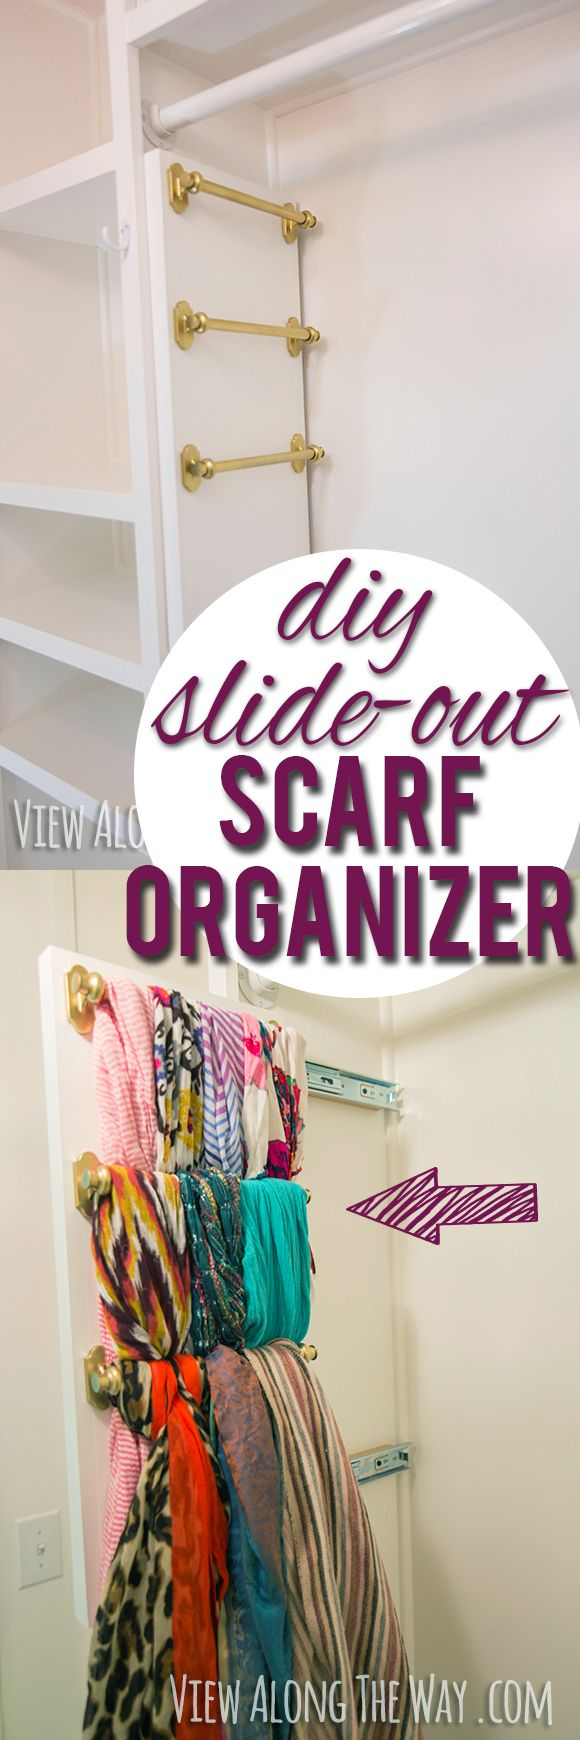 Every girl needs this! Brilliant way to hang your scarves - it ...